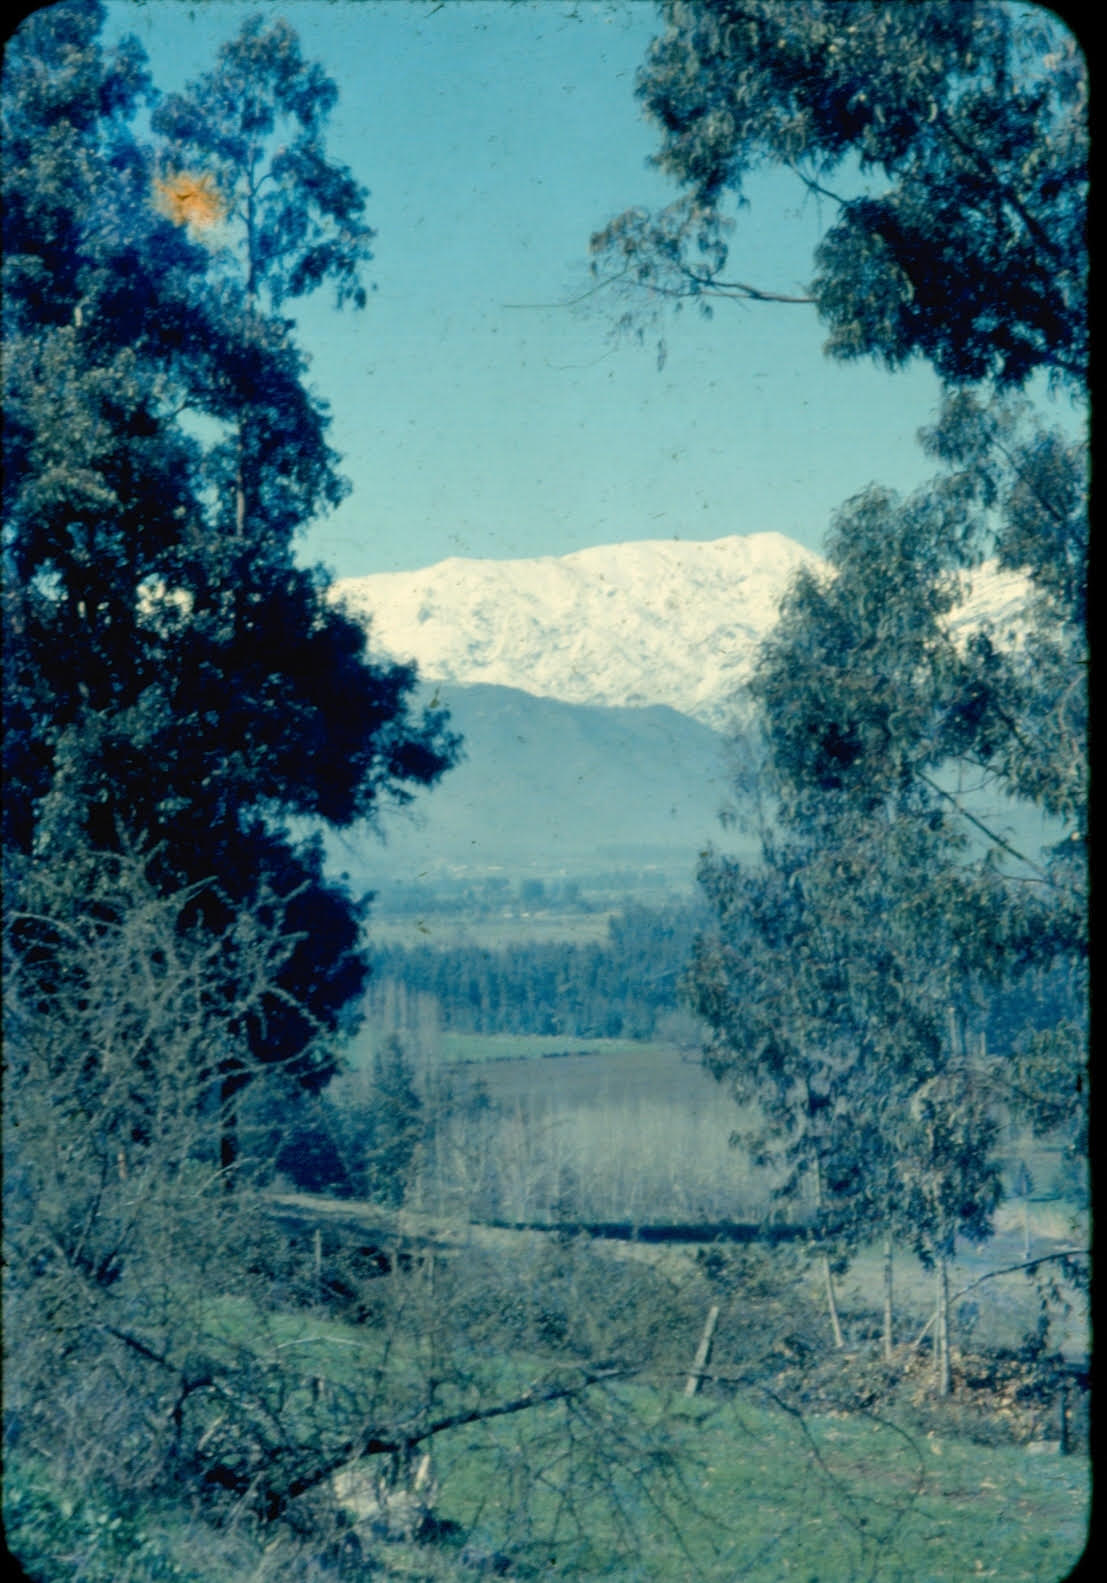 Enterreno - Fotos históricas de chile - fotos antiguas de Chile - Sector Lo Curro de Santiago en 1959